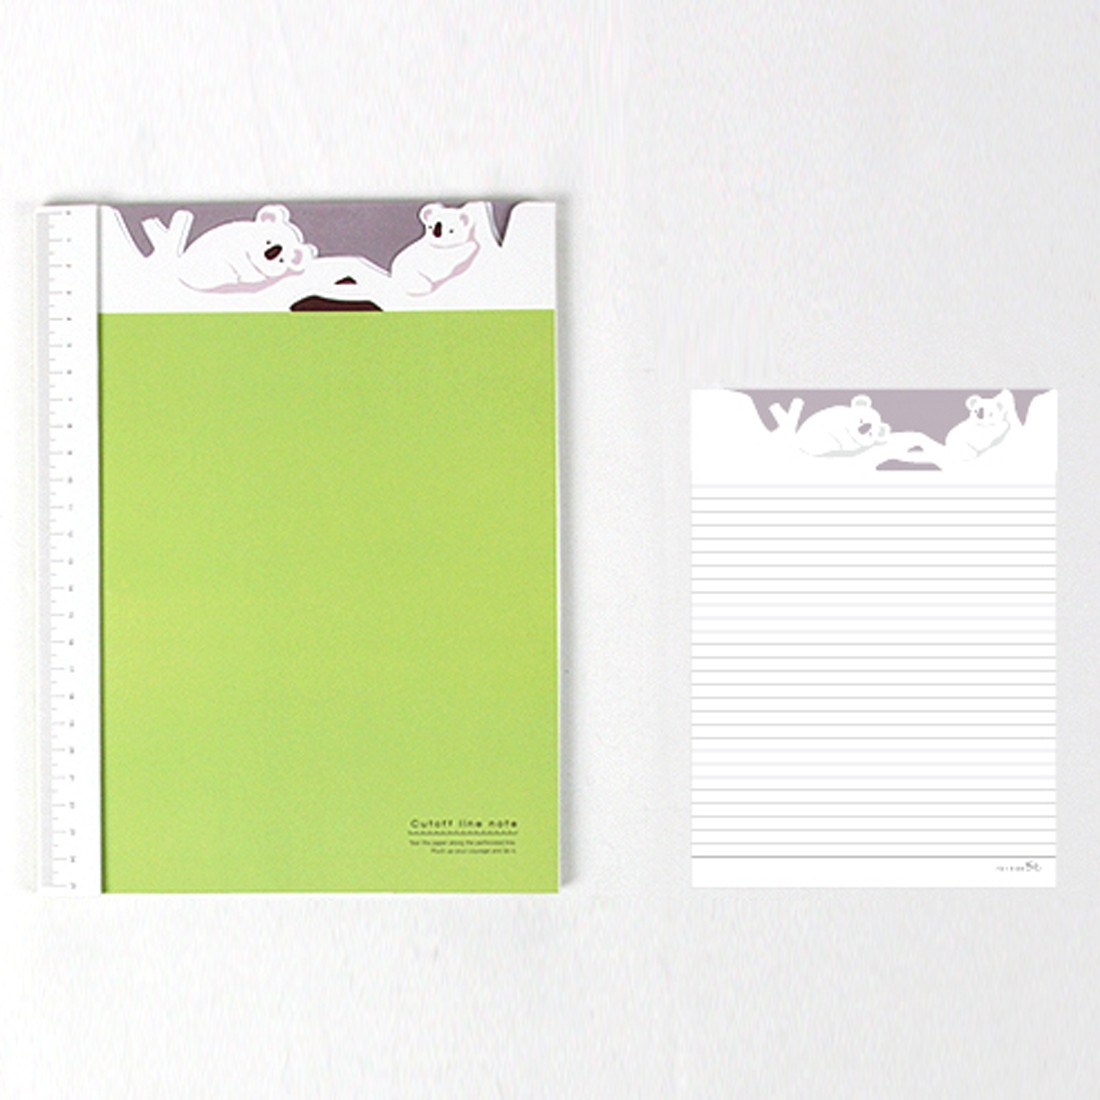 Adorable Koala Bear Patterned Lined Notebook Notepad with Ruler